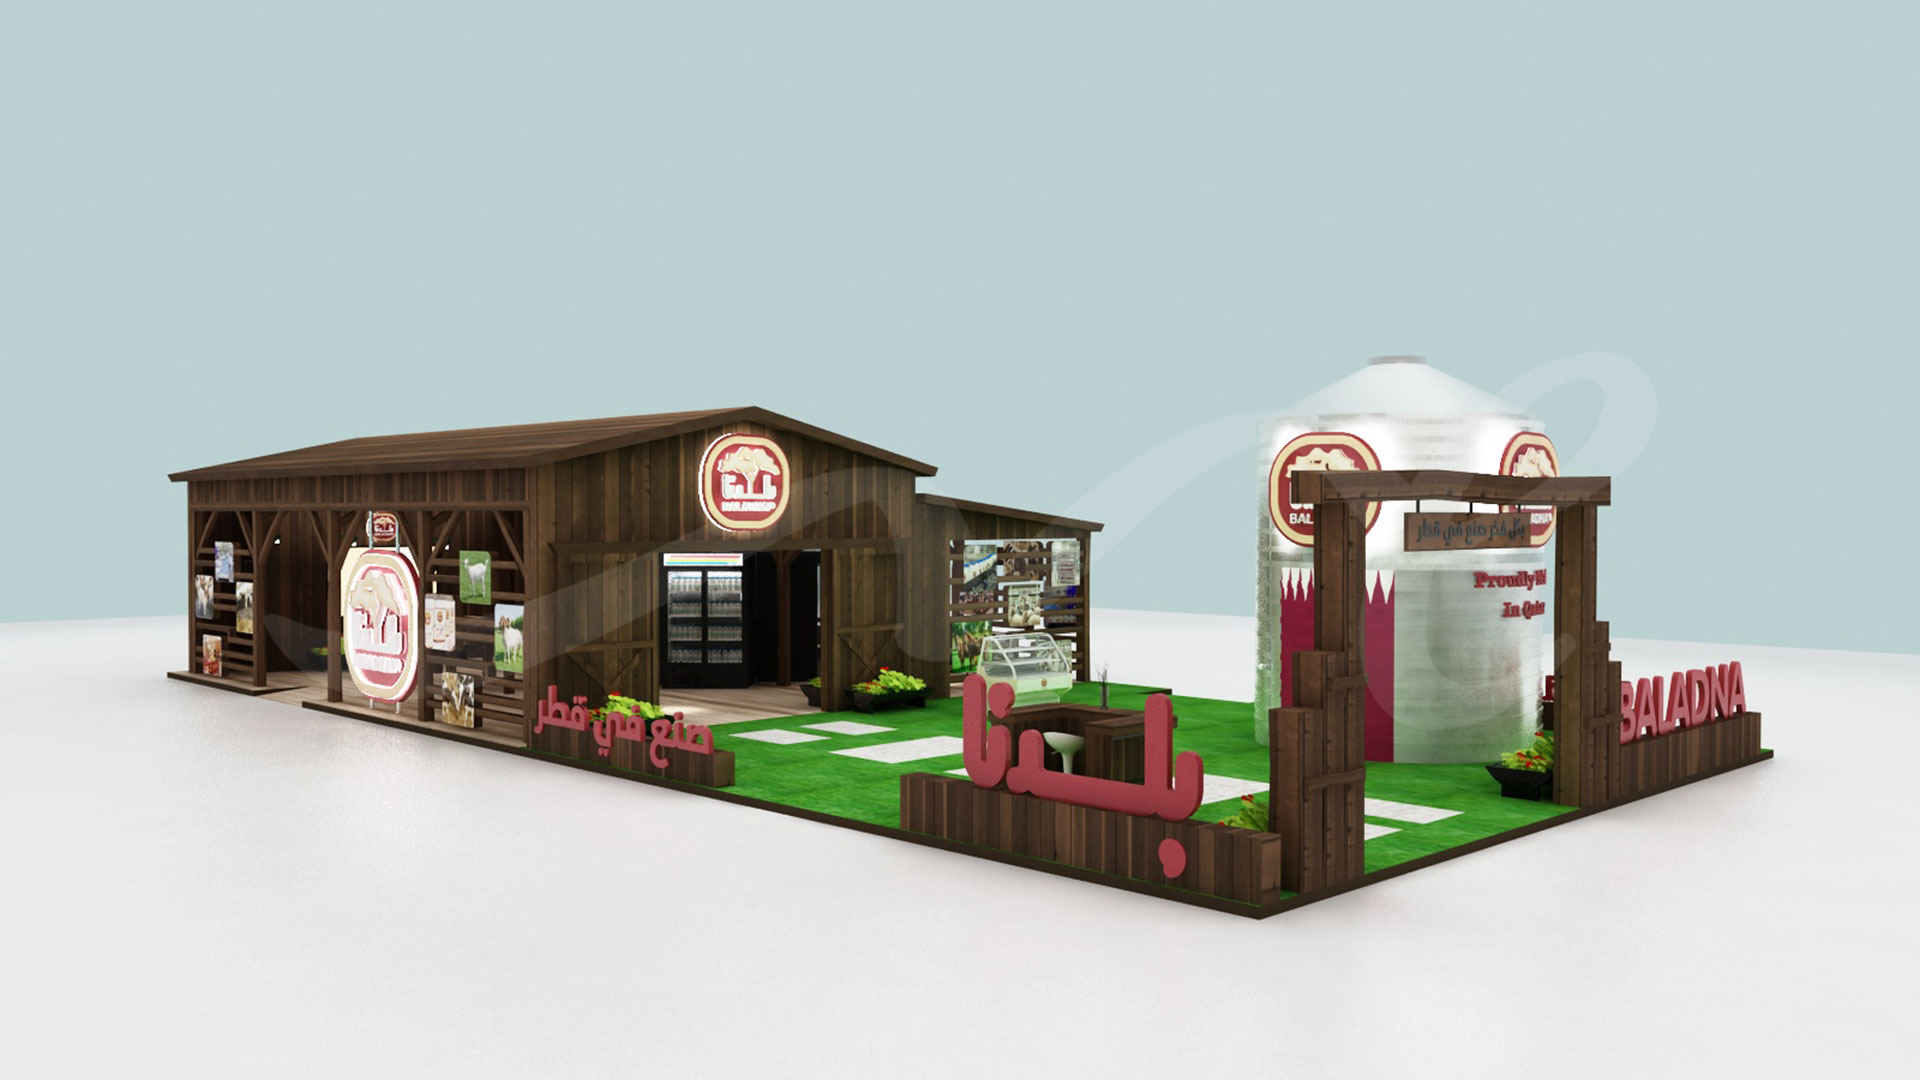 Baladna Exhibition Stand 3D Design by ME Visual for Agriteq 2019